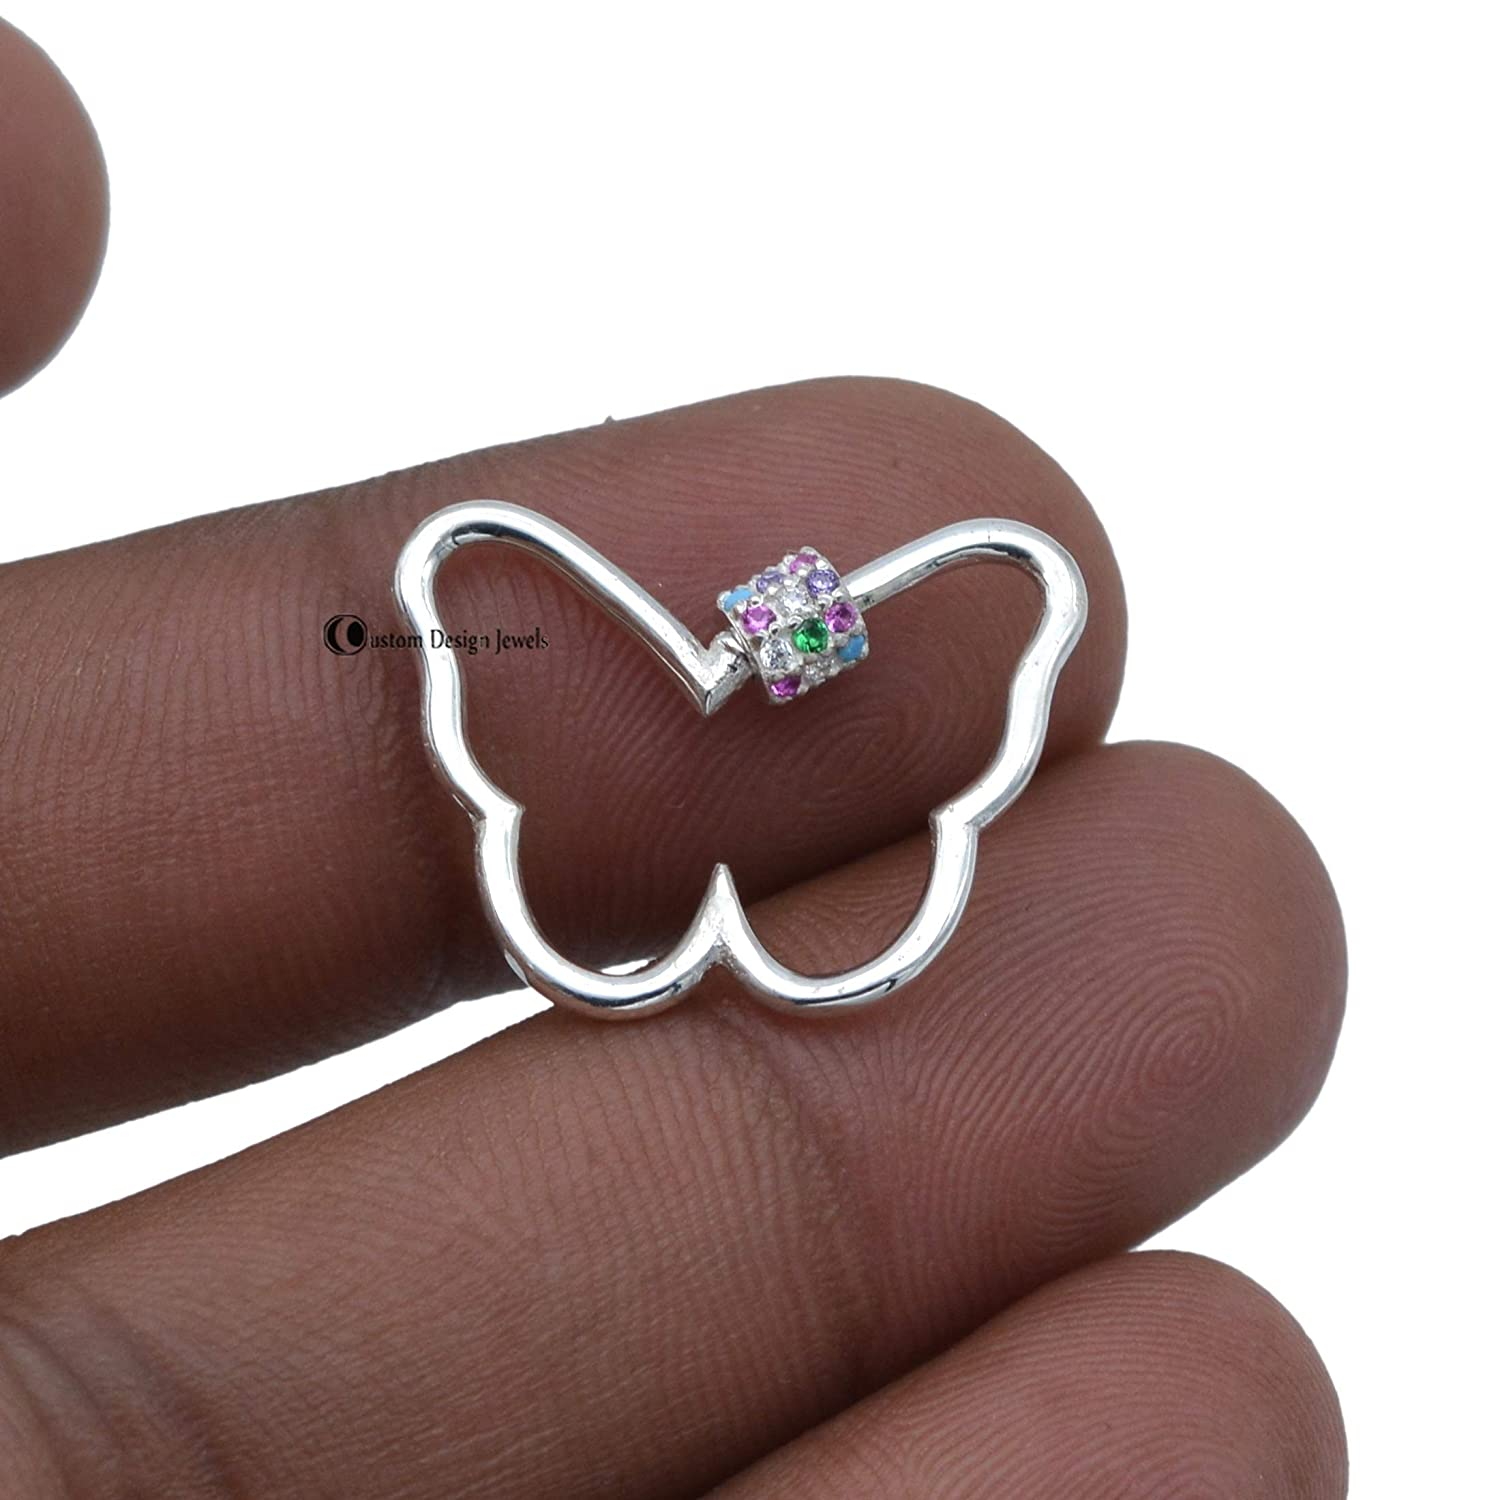 Tulsa Mall Multi Sapphire Gemstone Butterfly Carabiner J 9K Solid Lock Gold Sale Special Price